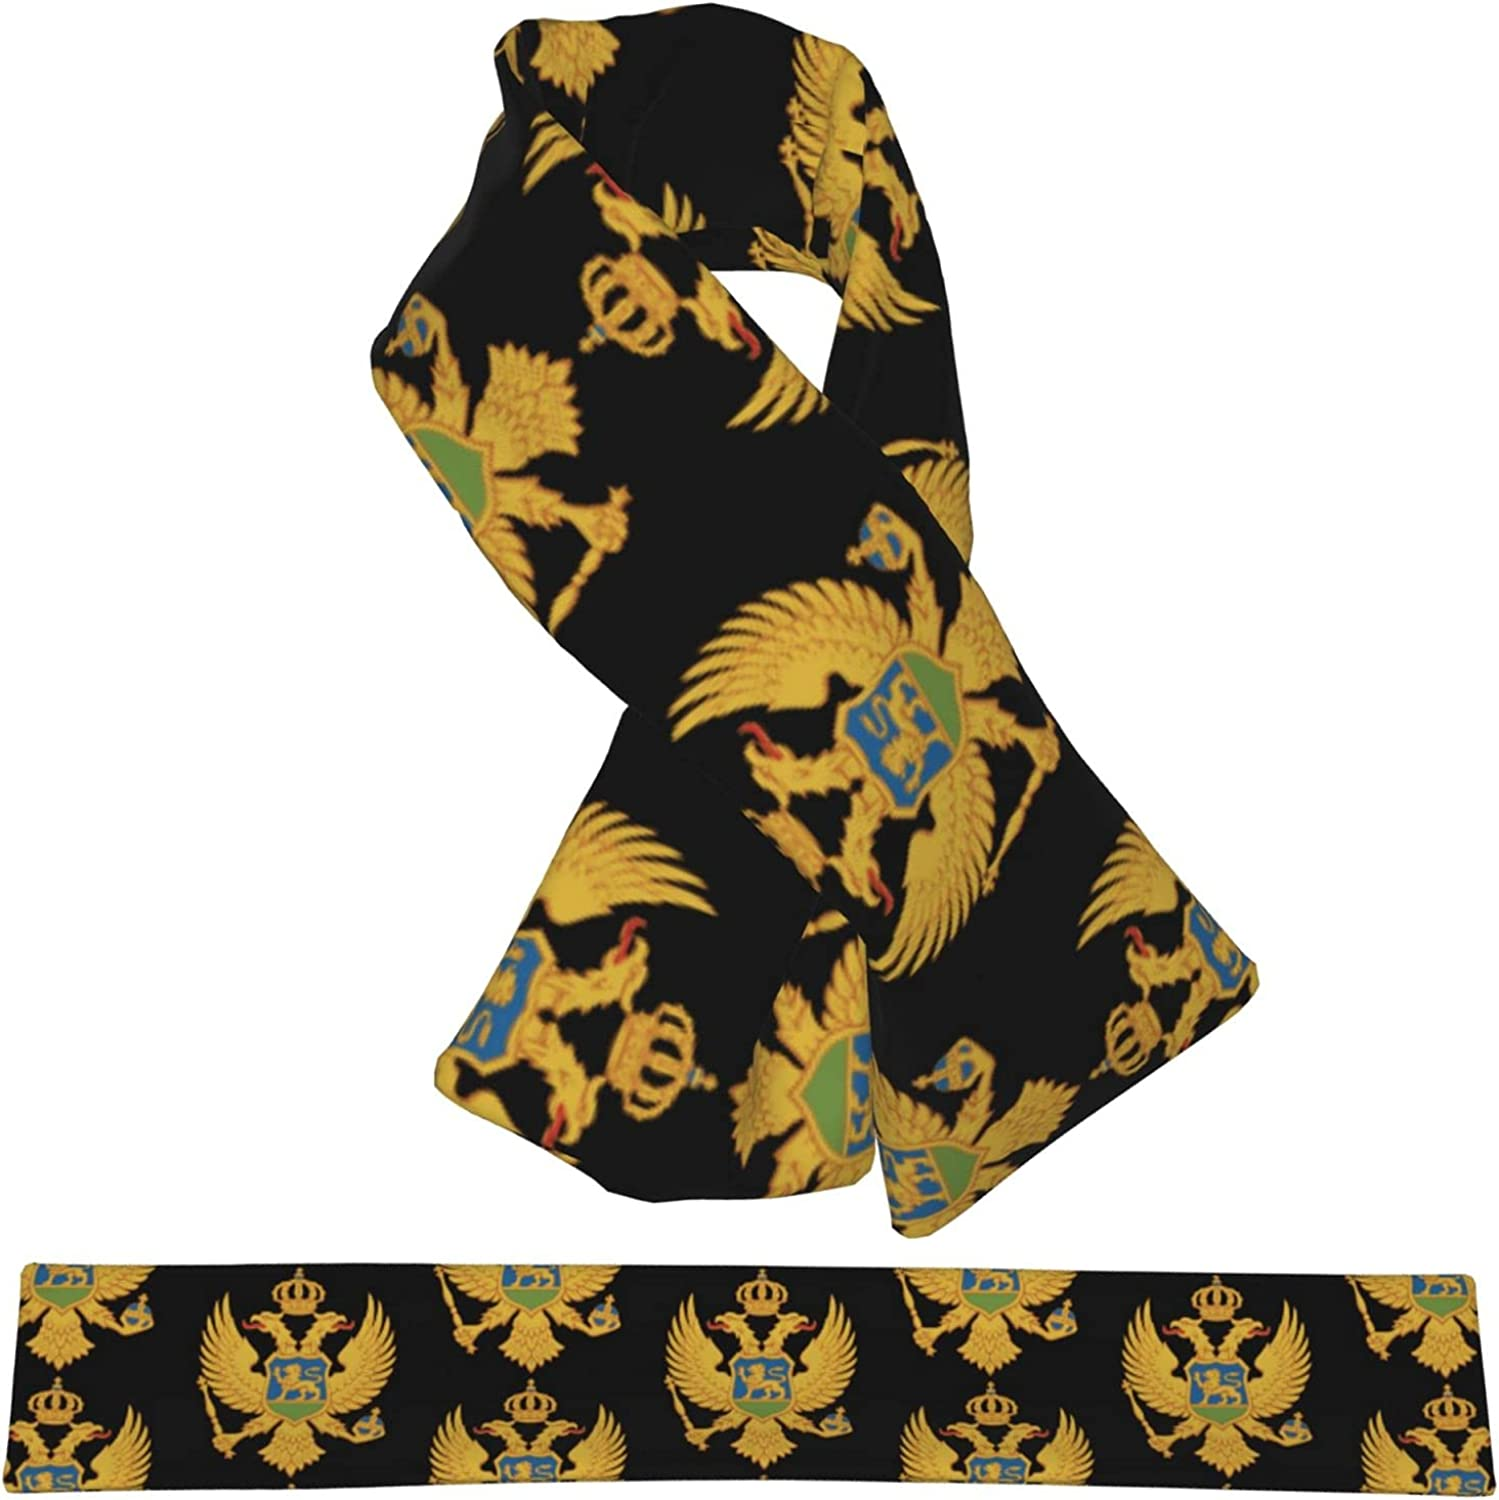 Flag Our shop OFFers the best service Of Excellent Montenegro Flannel Cross Collar Neck Wa Wrap Scarf Shawl